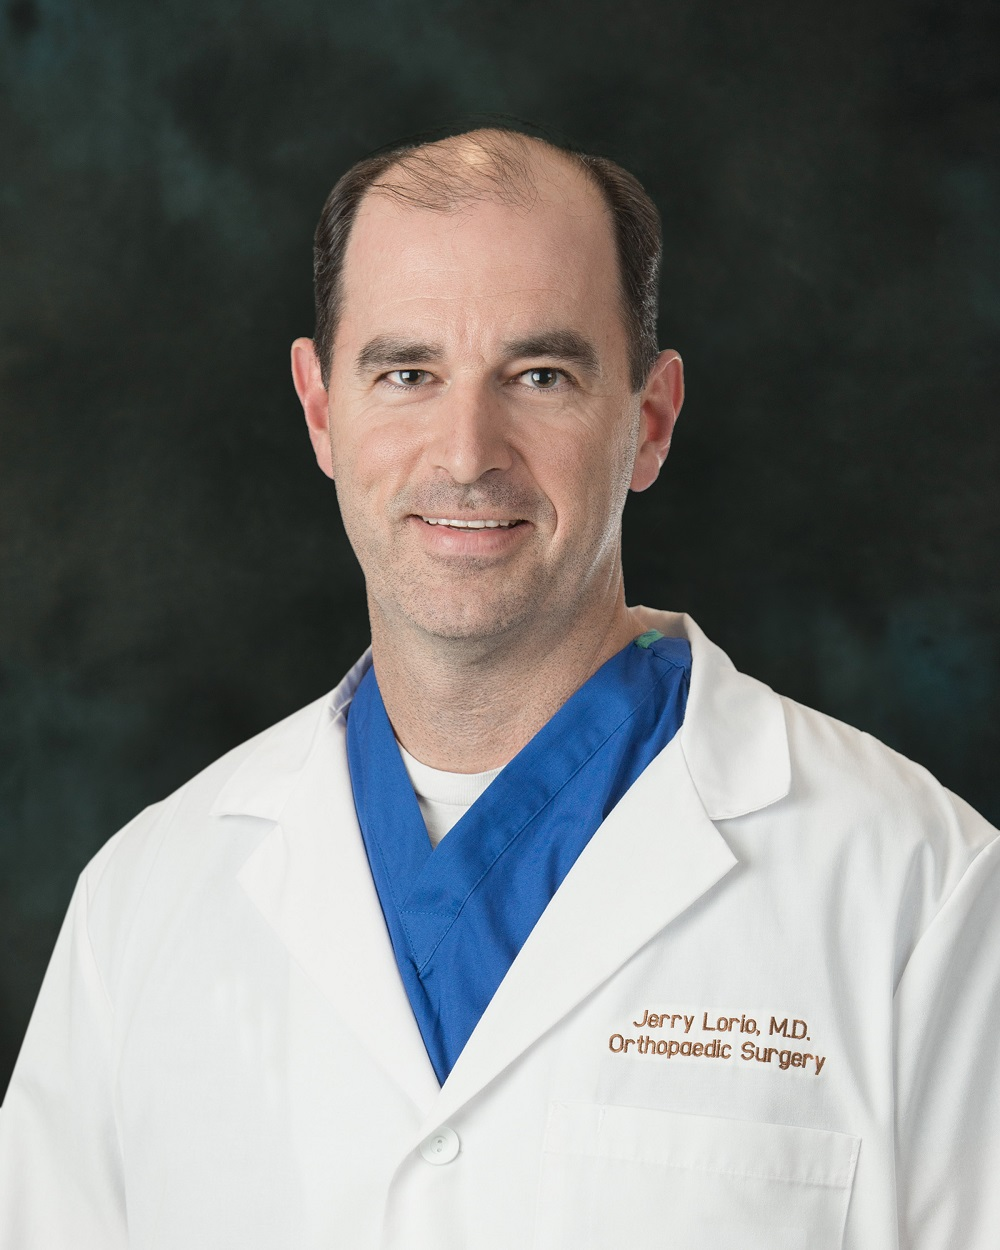 Dr. Jerry Lorio, MD